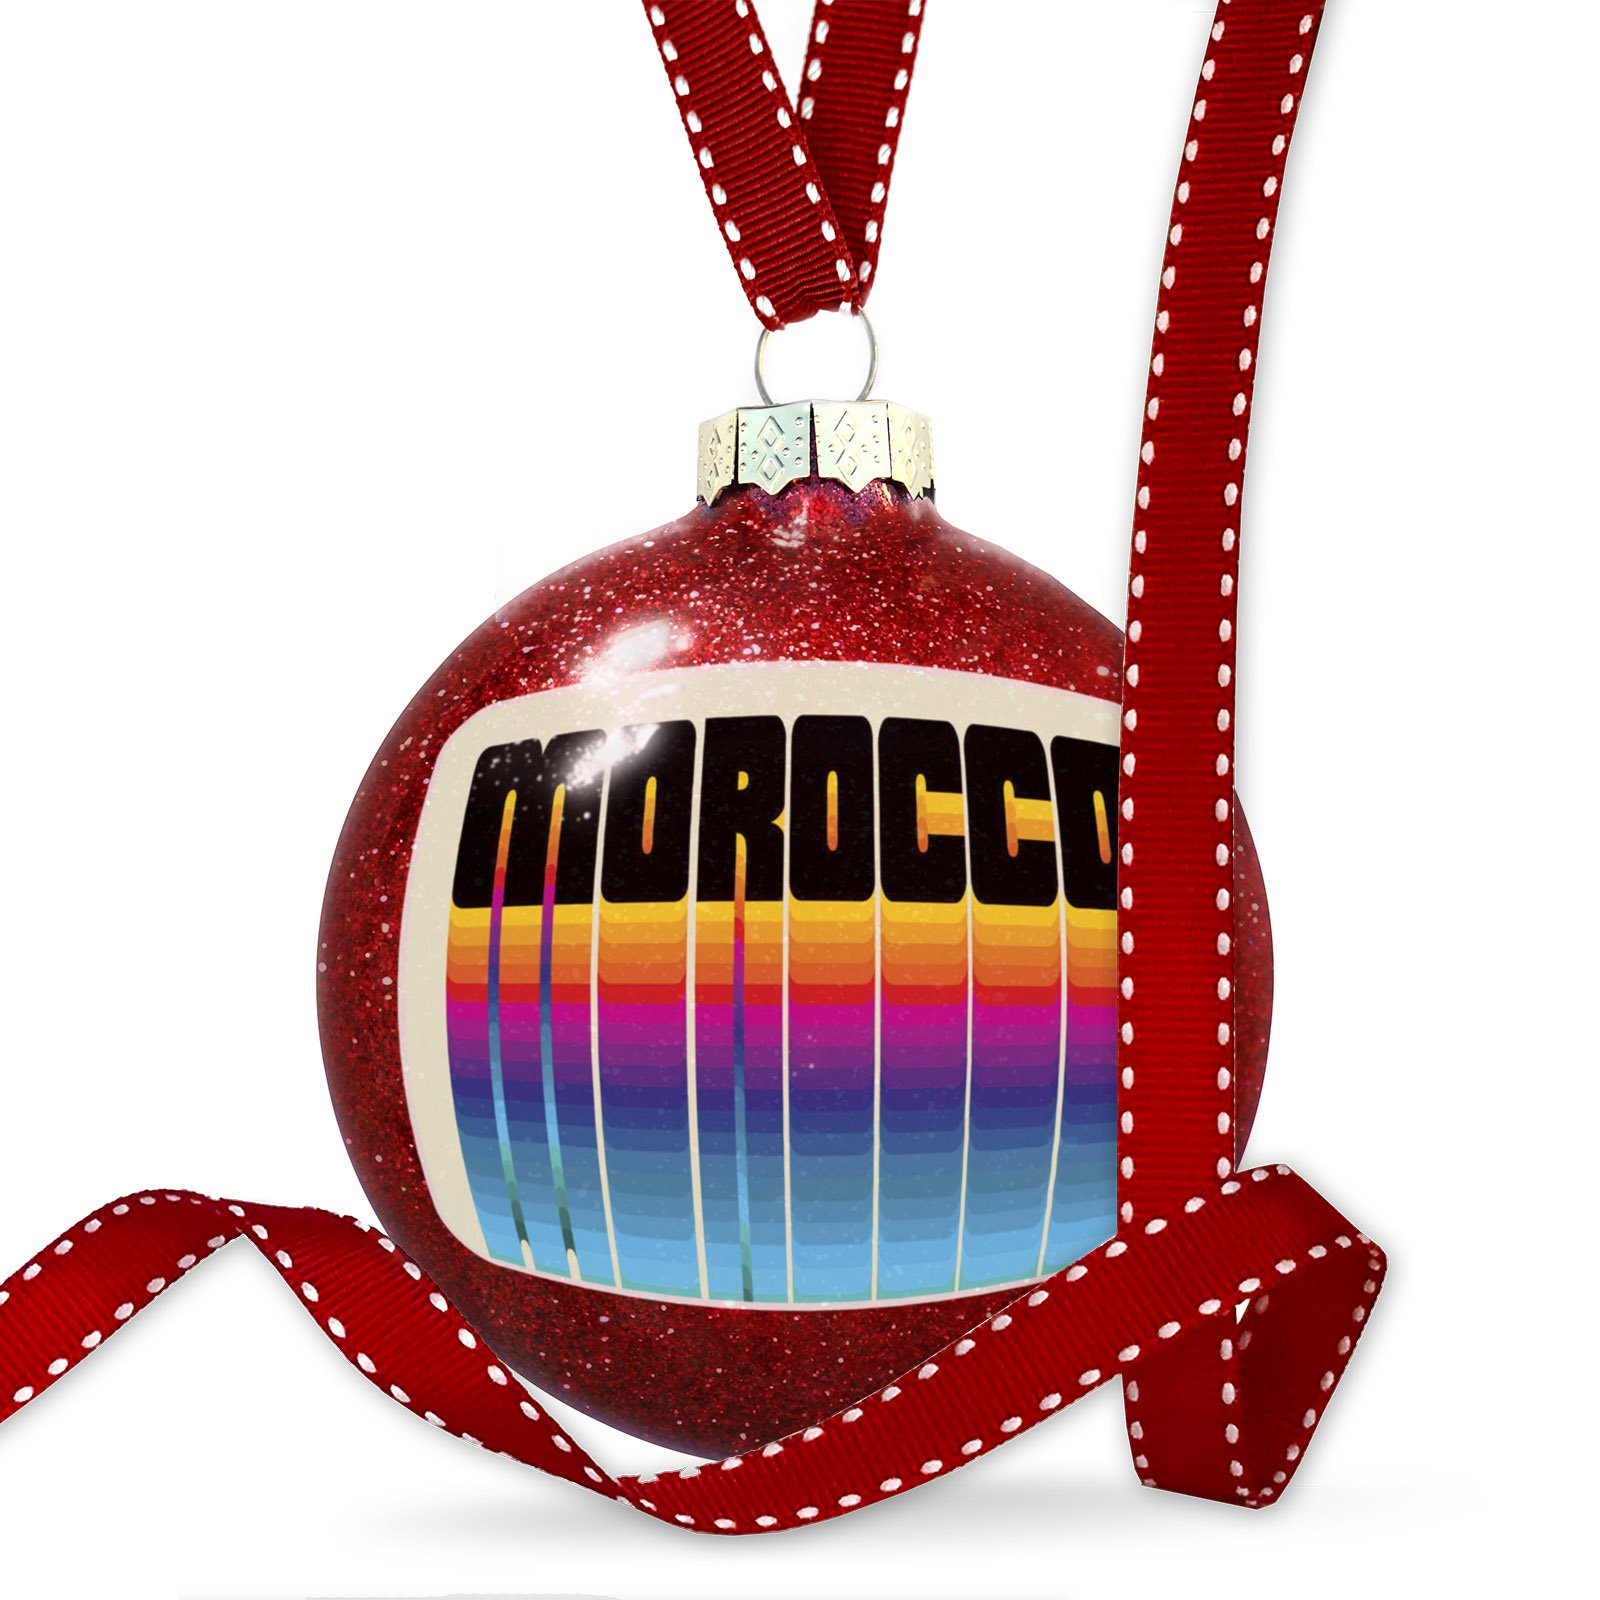 Christmas Decoration Retro Cites States Countries Morocco Ornament